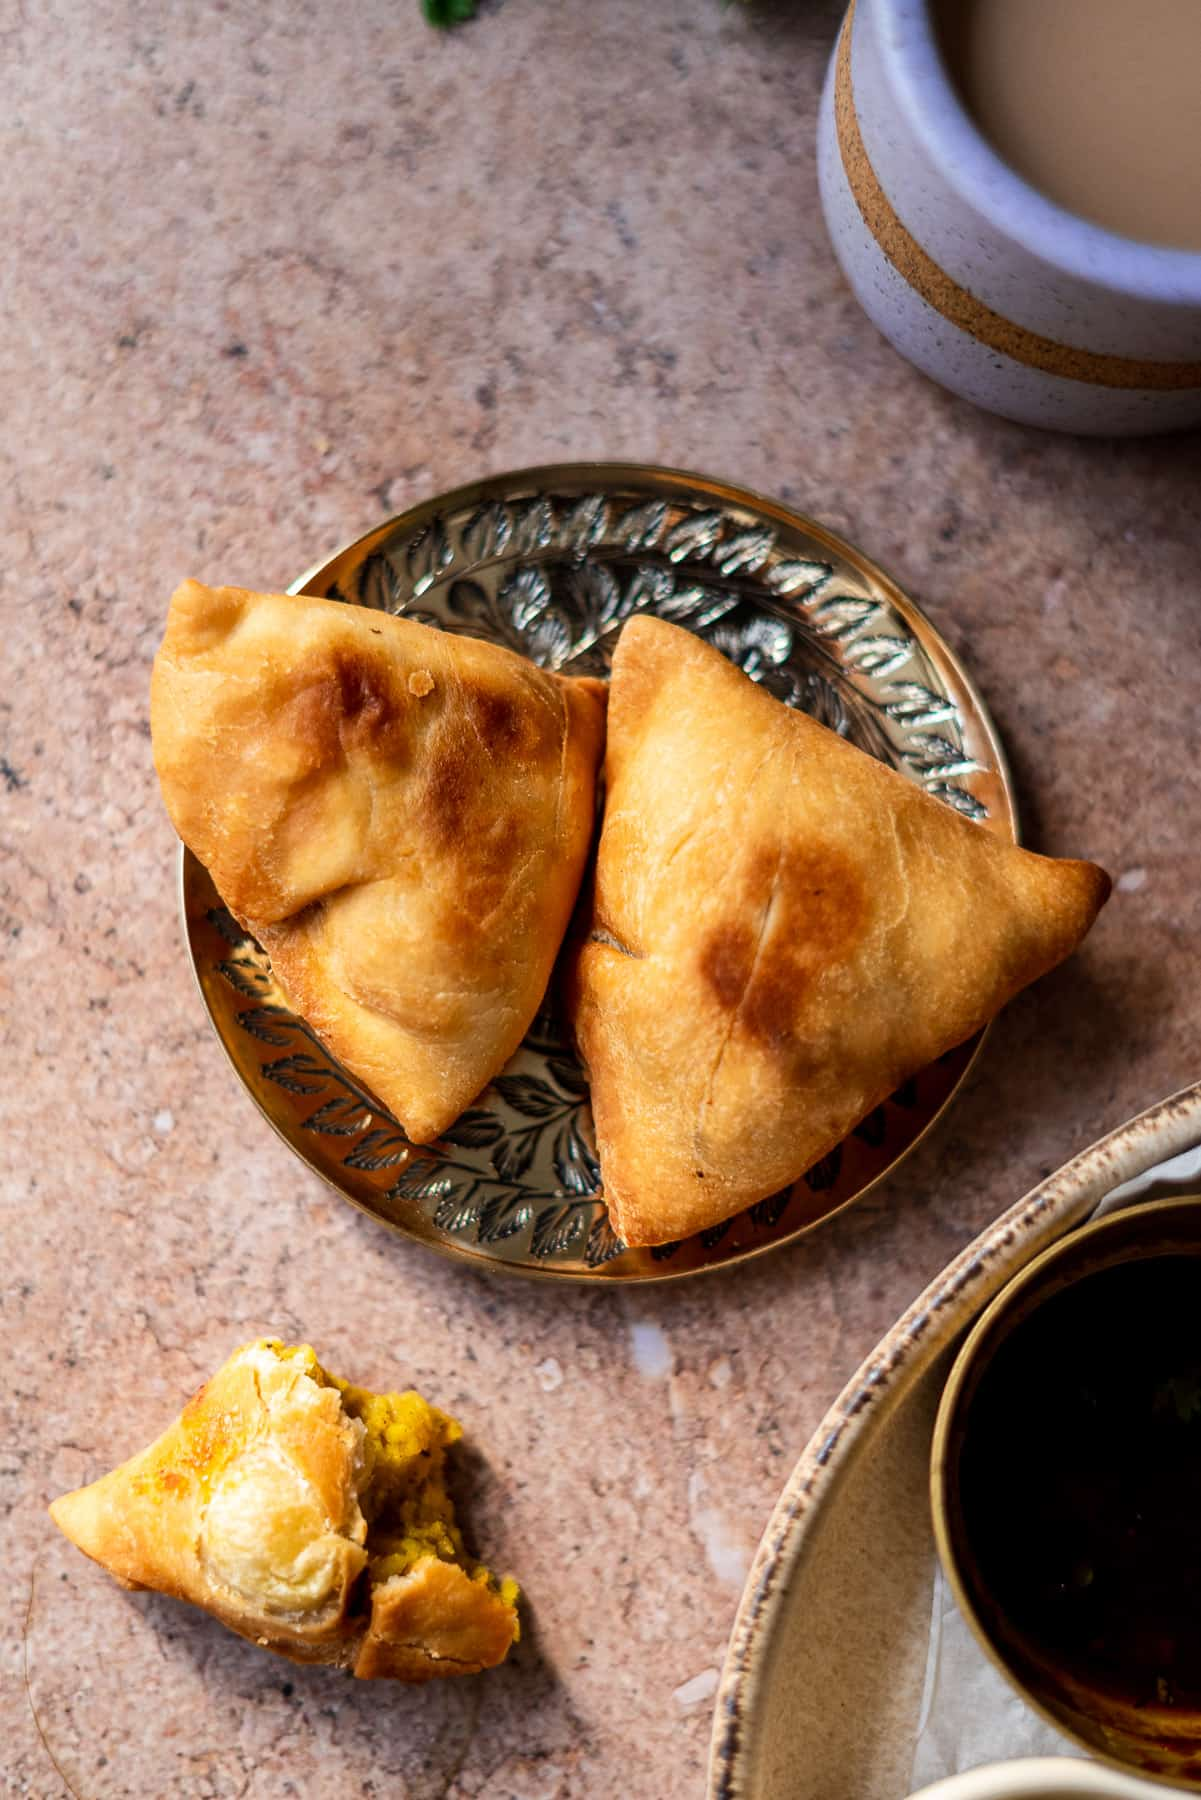 two samosas in a brass plate with a half eaten samosa